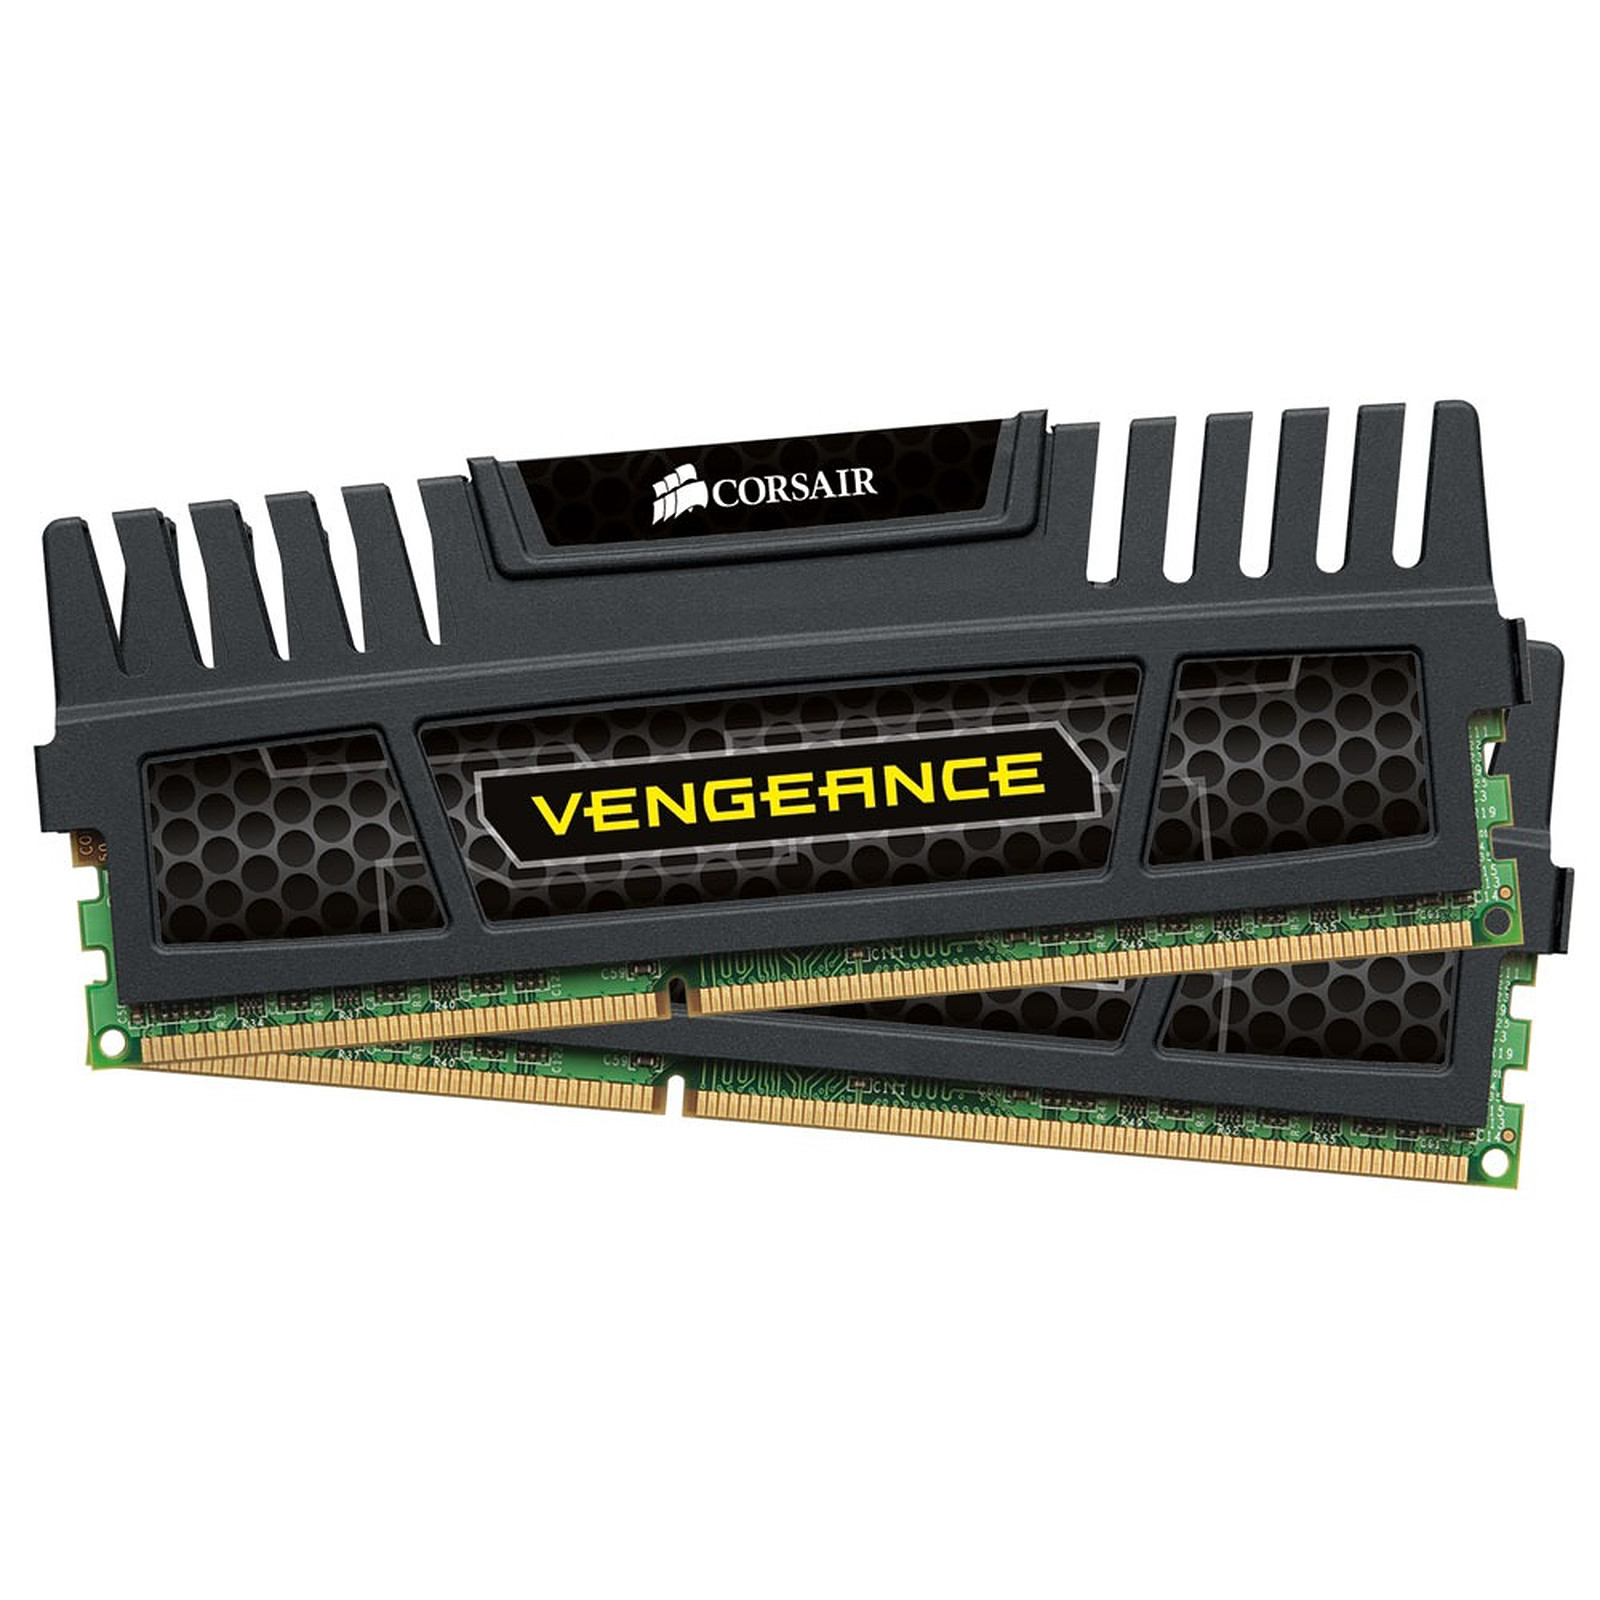 Corsair Vengeance Series 8 Go (2x 4 Go) DDR3 1600 MHz CL9